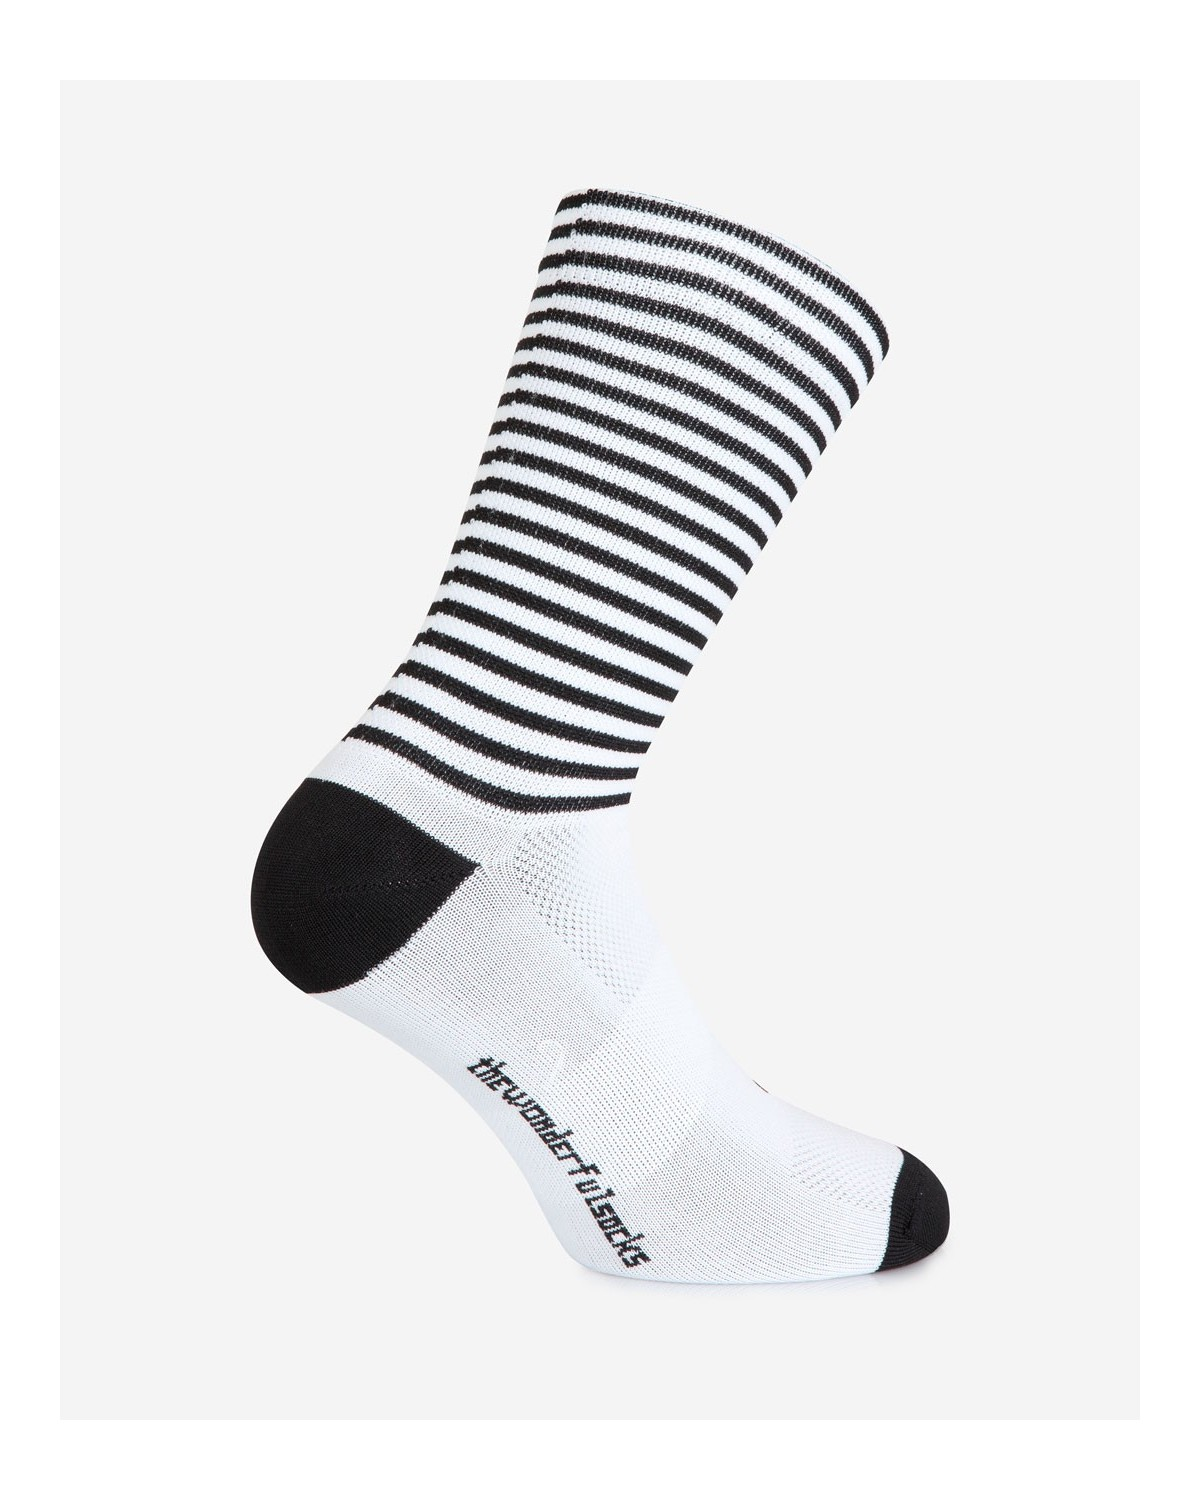 The Wonderful Socks Breton 4 Radsocken